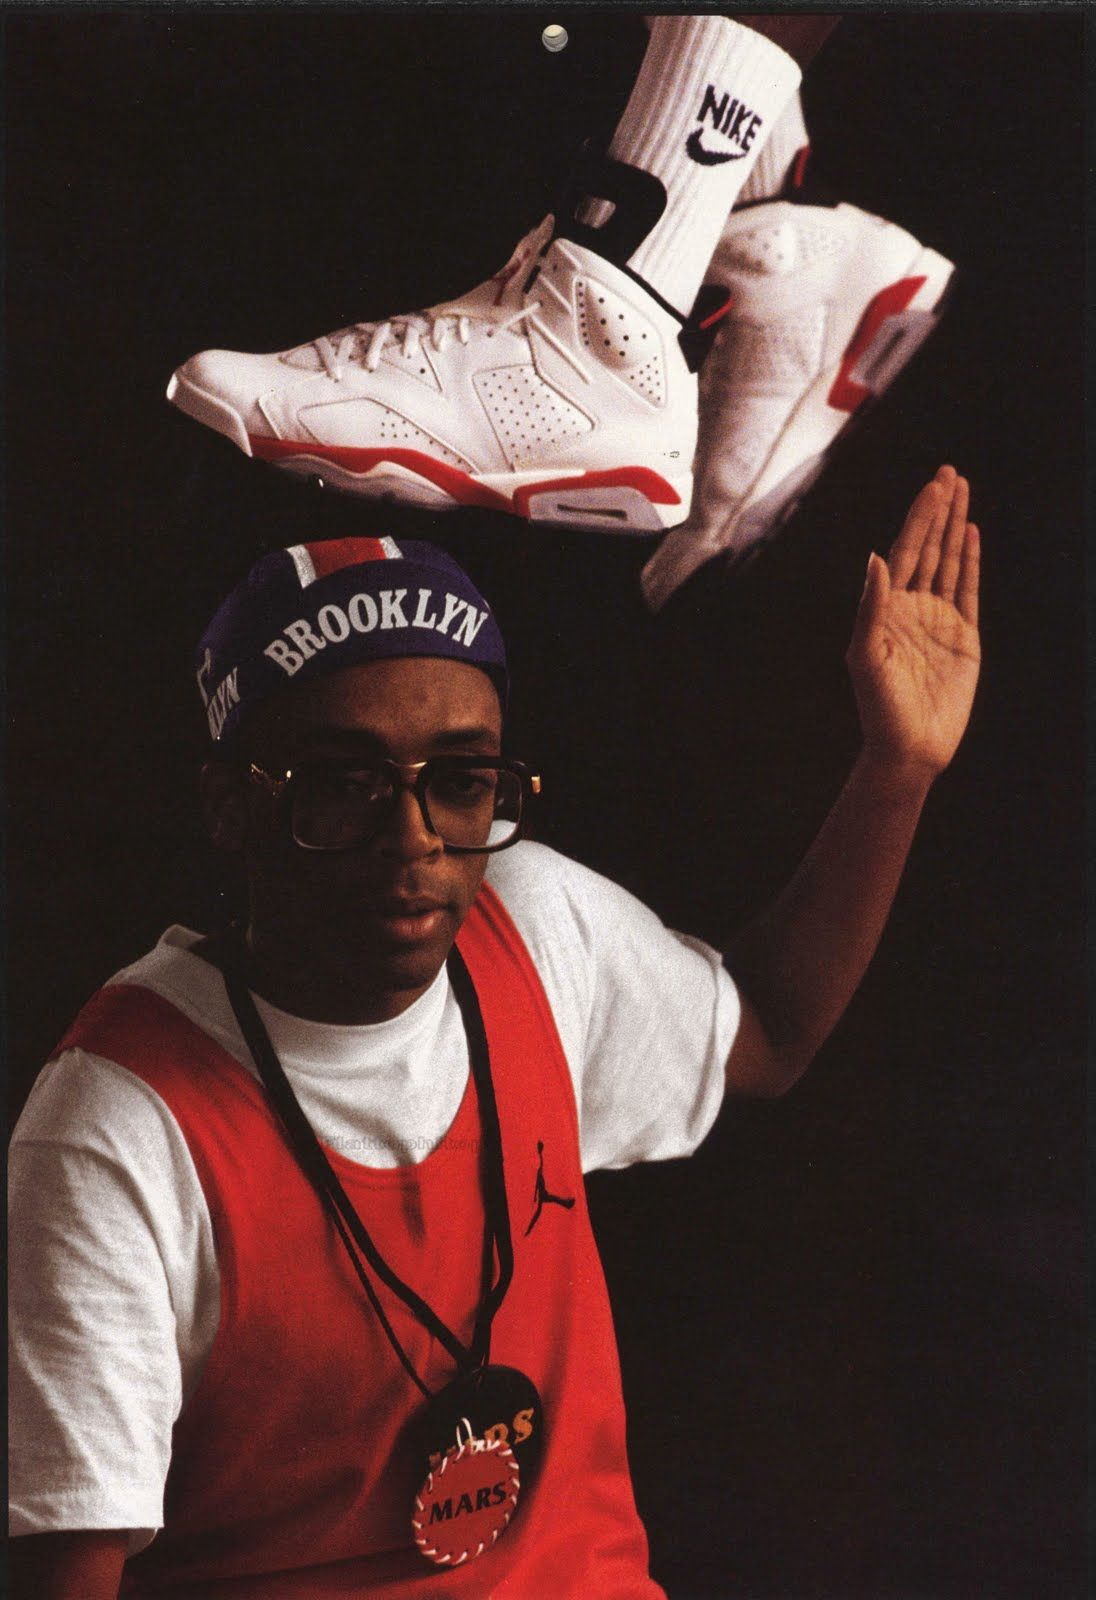 nike air jordan spike lee brooklyn advert  e8ad37a79